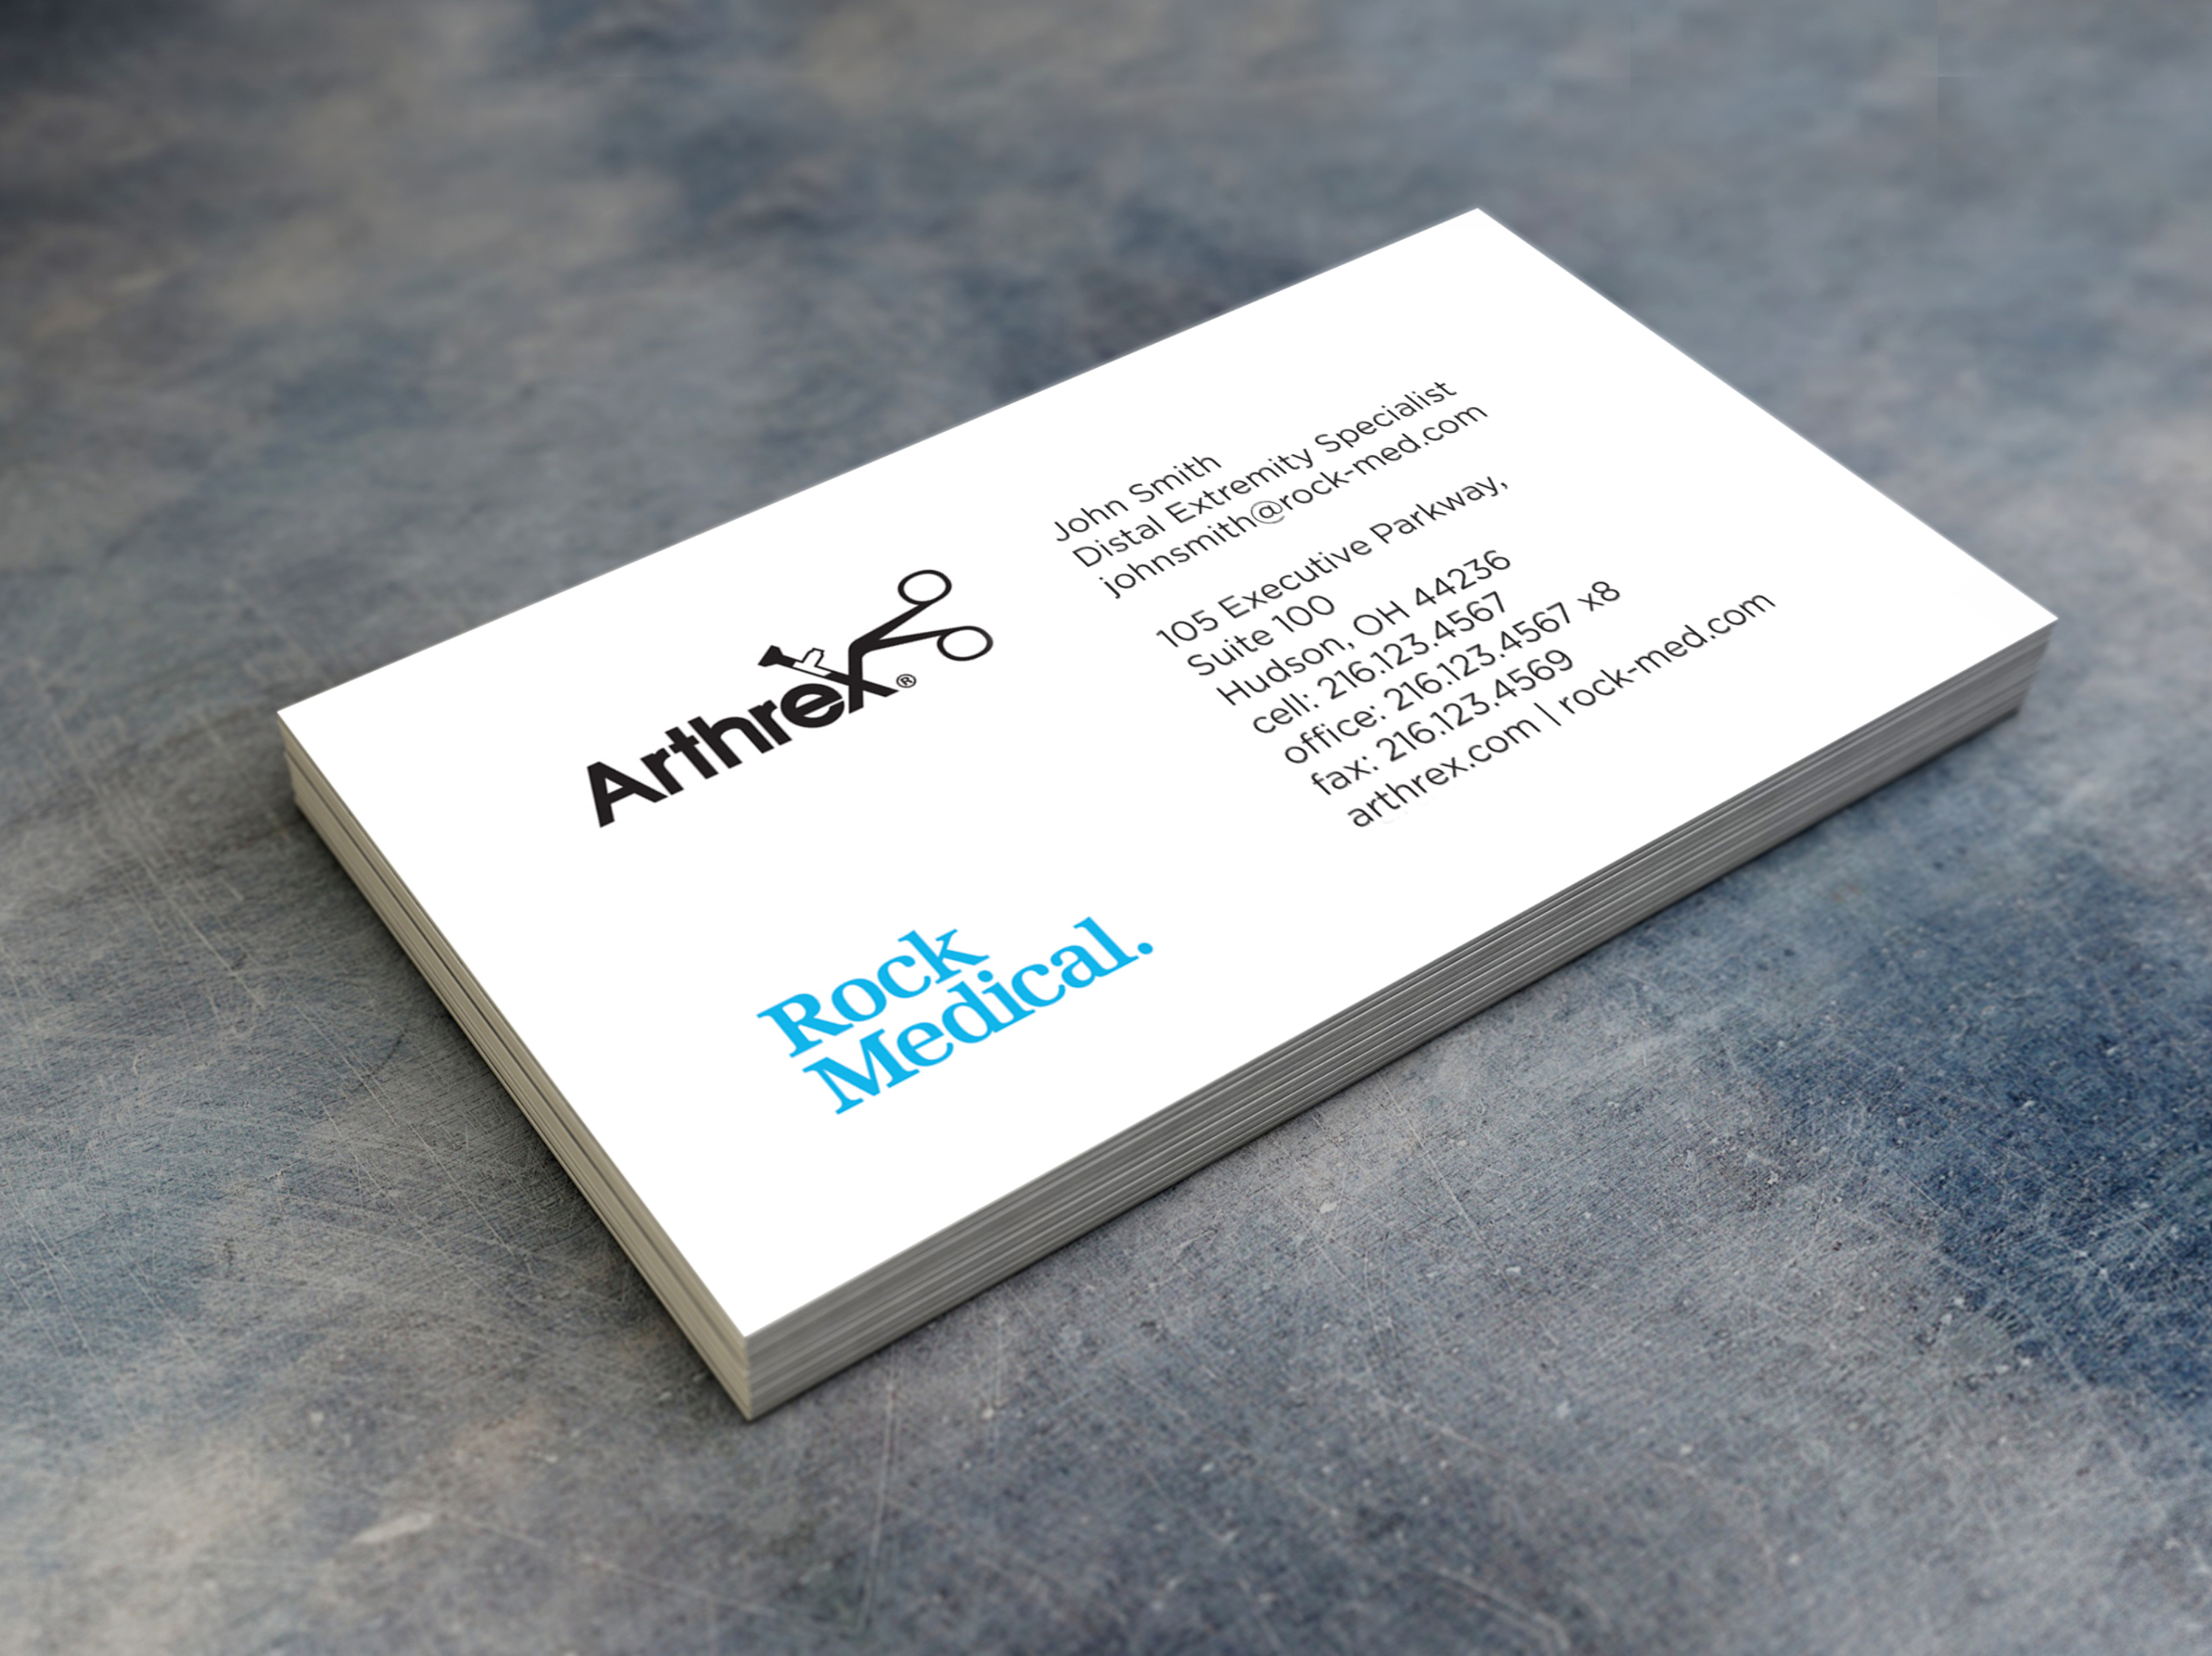 Rock-Medical_Business-Card-Mockup-John-Smith-fnl